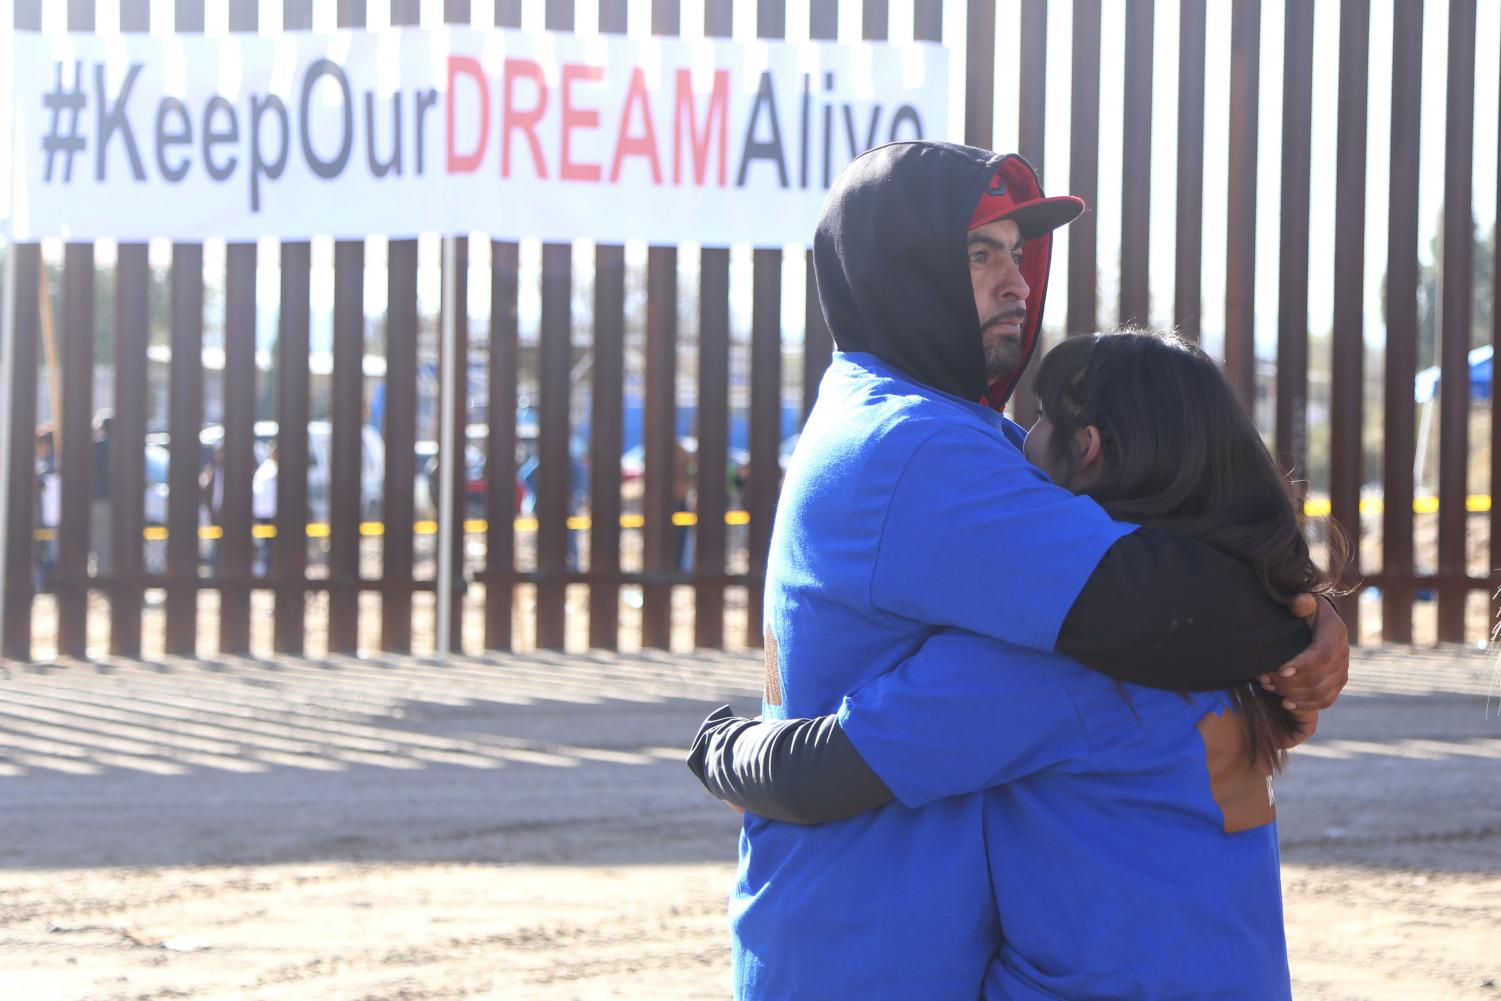 Dozens+of+families+were+reunited+at+the+Sunland+Park%2C+NM+%2F+Ciudad+Ju%C3%A1rez+border+on+Sunday%2C+Dec.+10%2C+2017+for+%E2%80%9CKeep+Our+Dream+Alive.%E2%80%9D+The+event+was+held+by+the+Border+Network+for+Human+Rights.